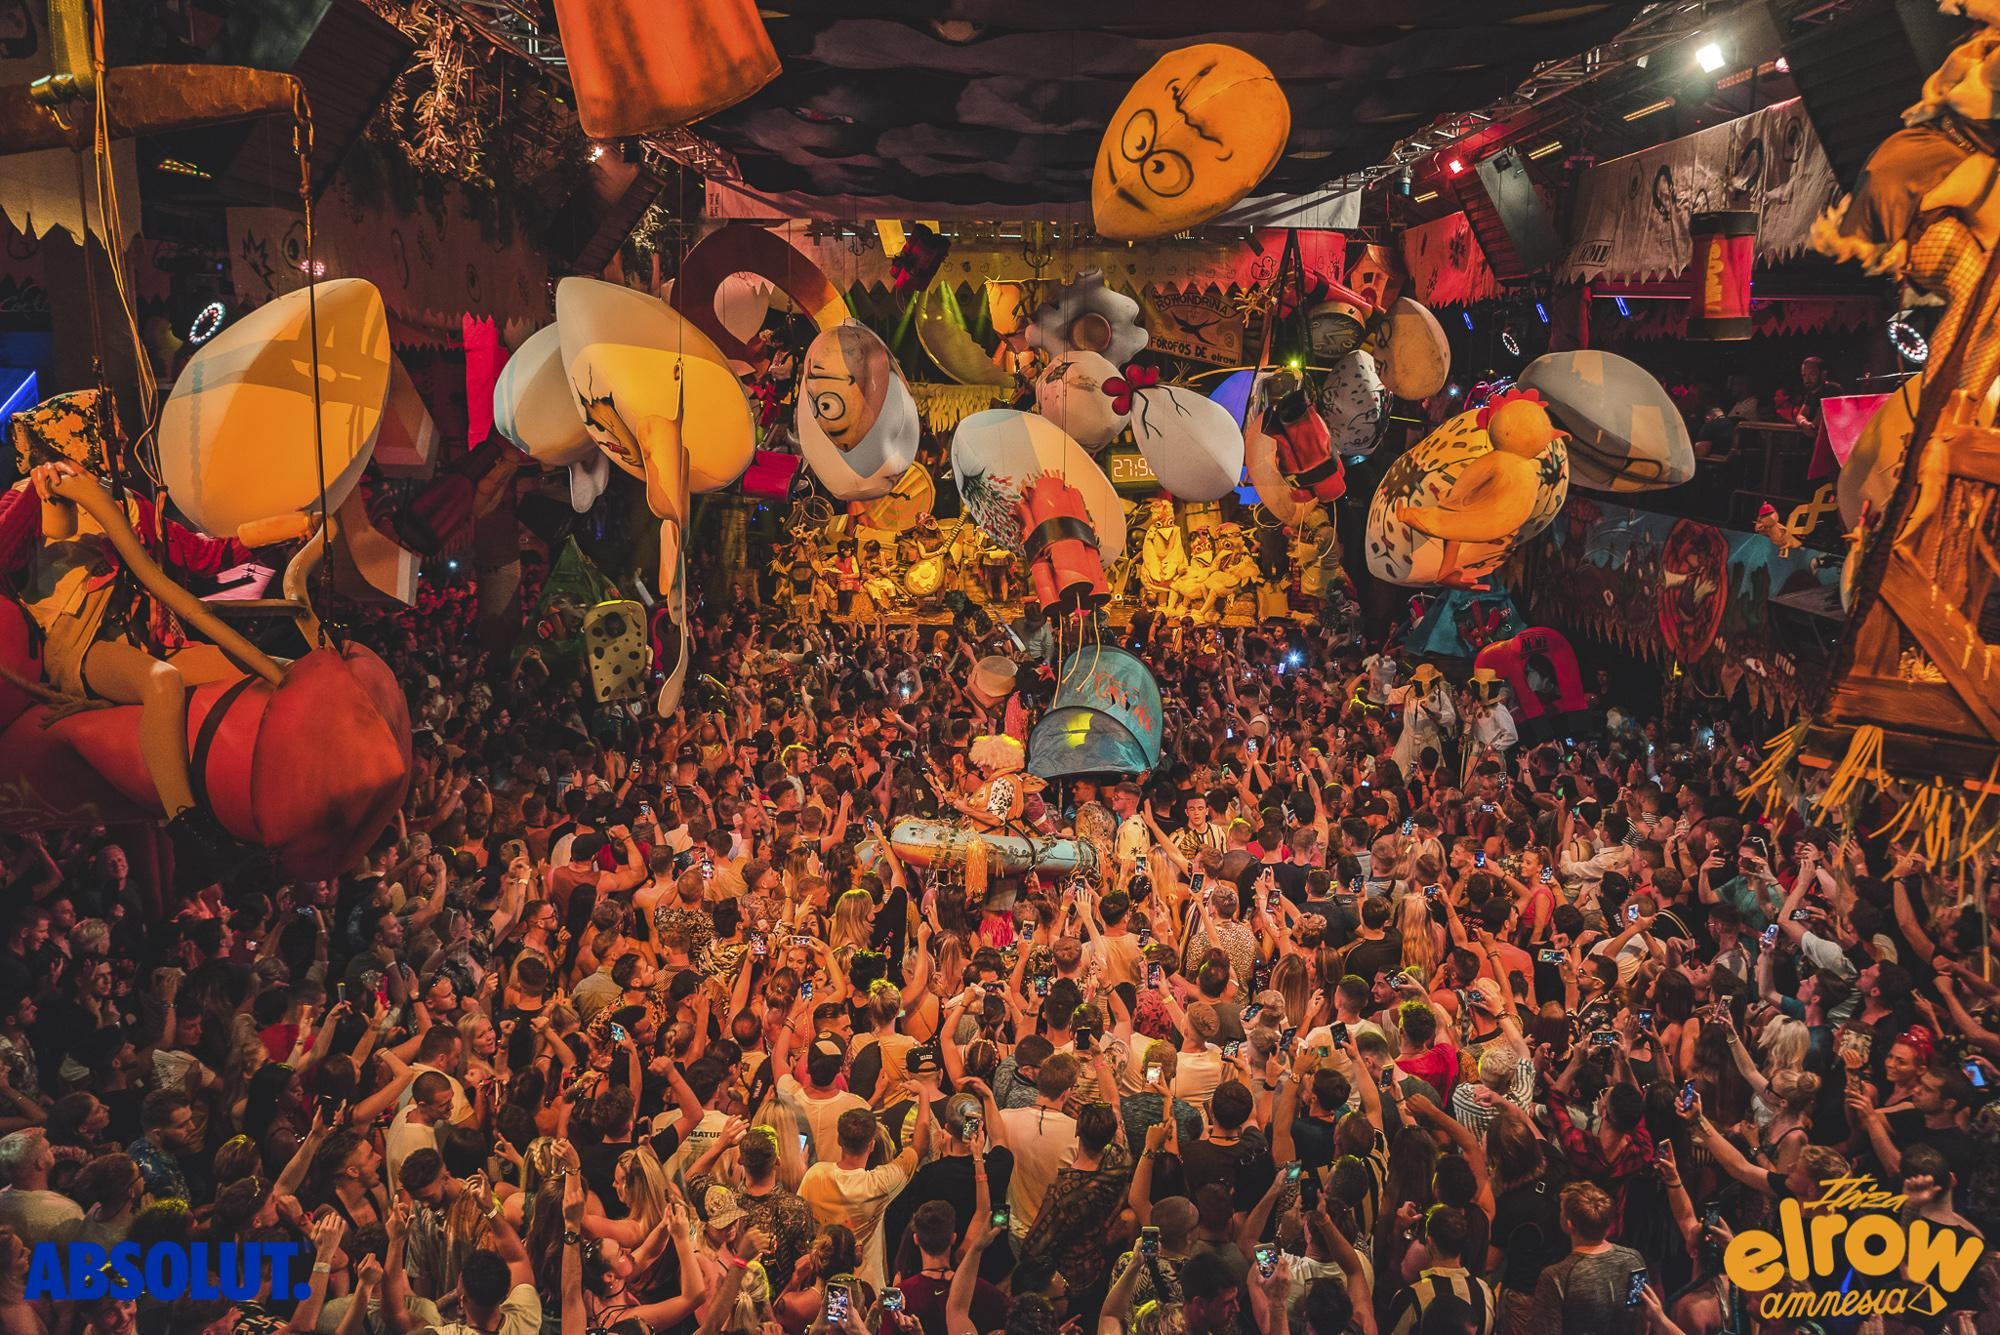 elrow Announces Huge Lineup for Biggest US Show Yet